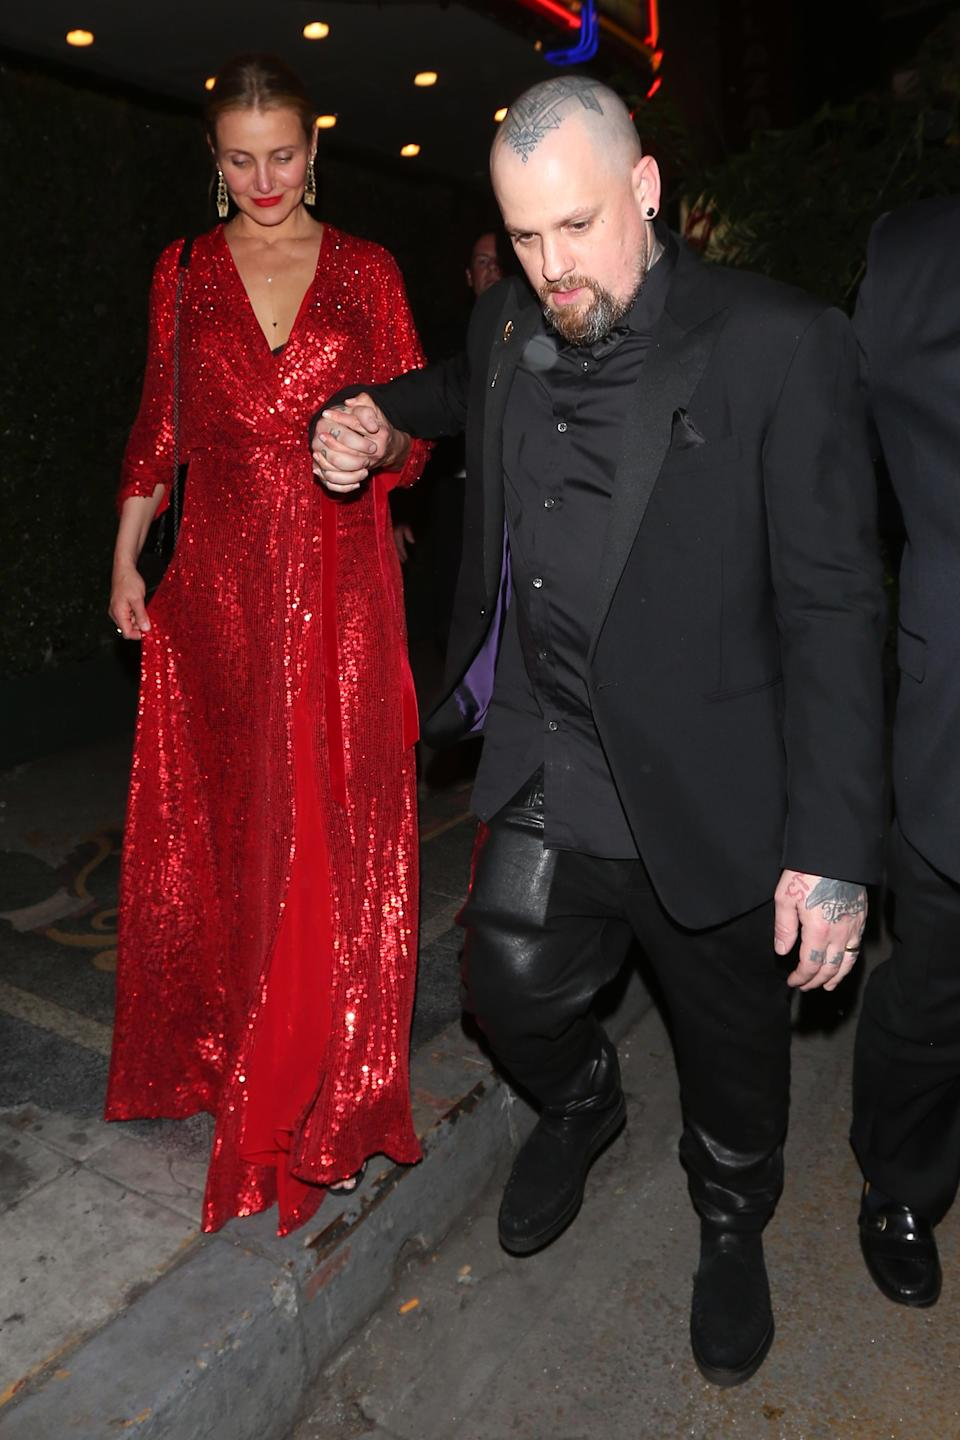 The newly retired Cameron Diaz and husband Benji Madden arriving for Gwyneth Paltrow and Brad Falchuk's engagement party on April 14. (Photo: Splash News)